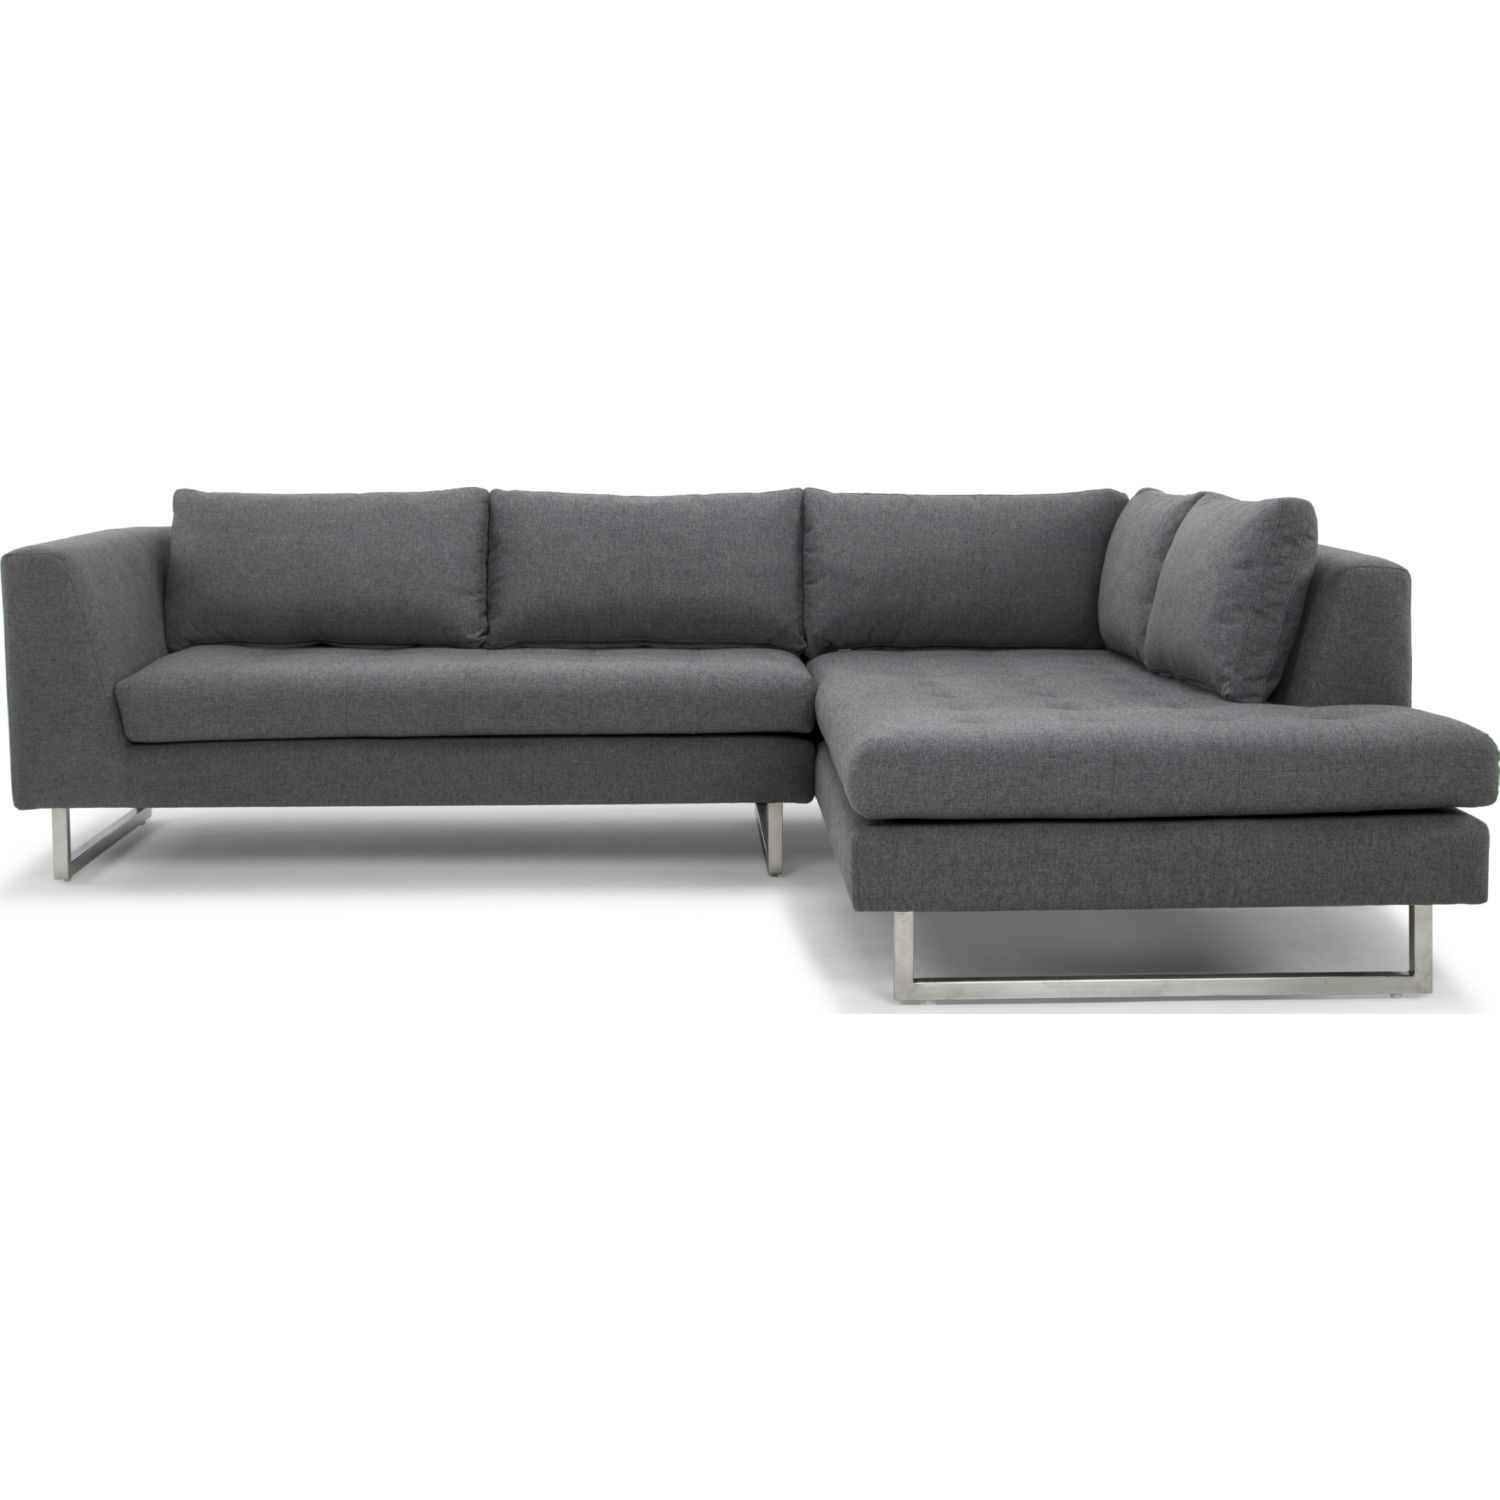 Superb Janis Sectional Sofa W Right Hand Chaise In Shale Grey Fabric By Nuevo Modern Furniture Short Links Chair Design For Home Short Linksinfo